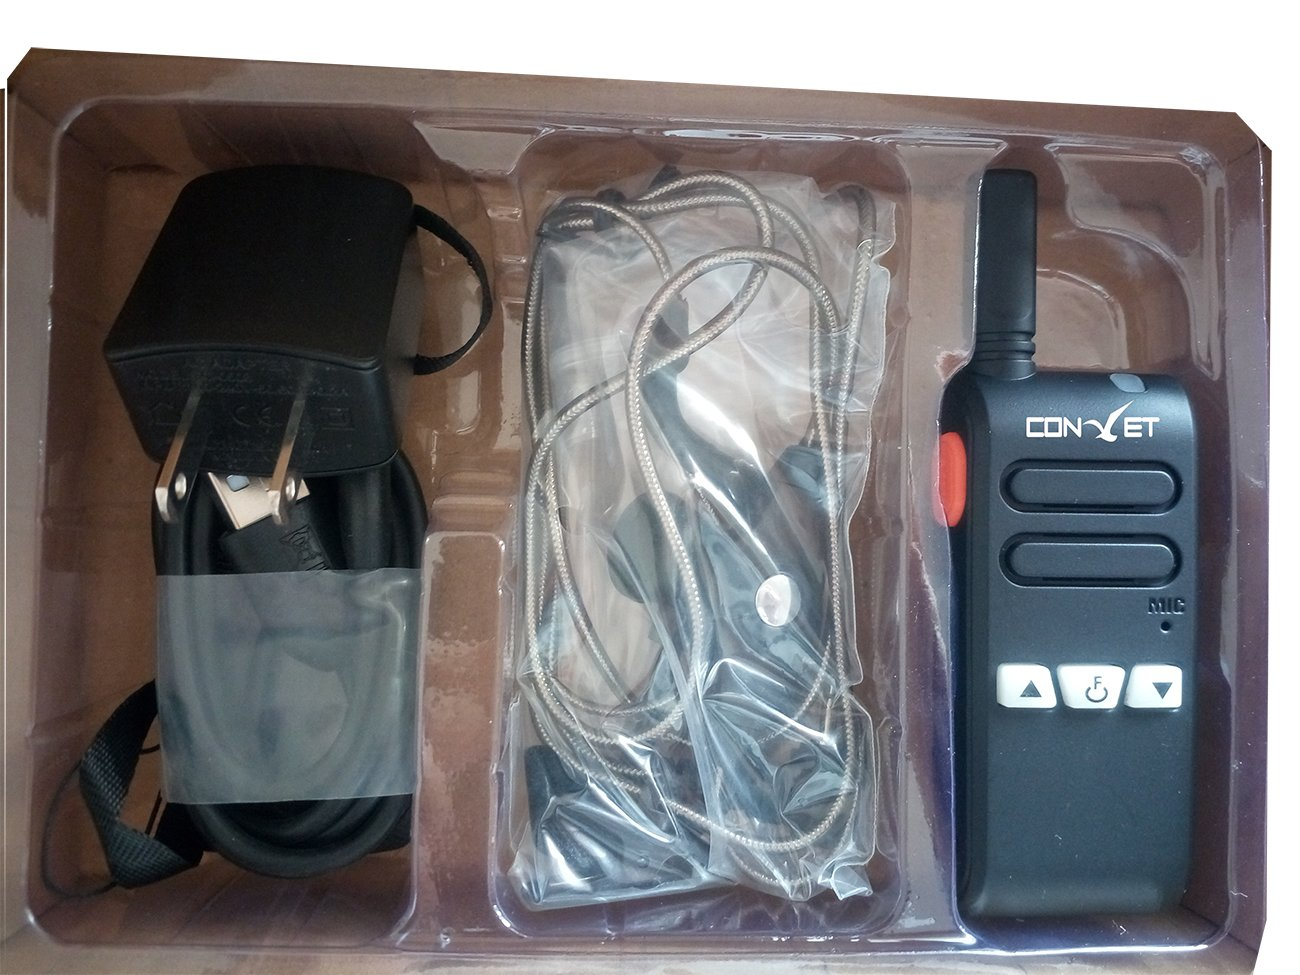 ContalkeTech CTET-Q70 high end mini size walkie talkie pmr gmrs two way radio 16 channels up to 4 miles rechargeable handheld walkie talkie with earpiece(1 Pair) by ContalkeTech (Image #4)